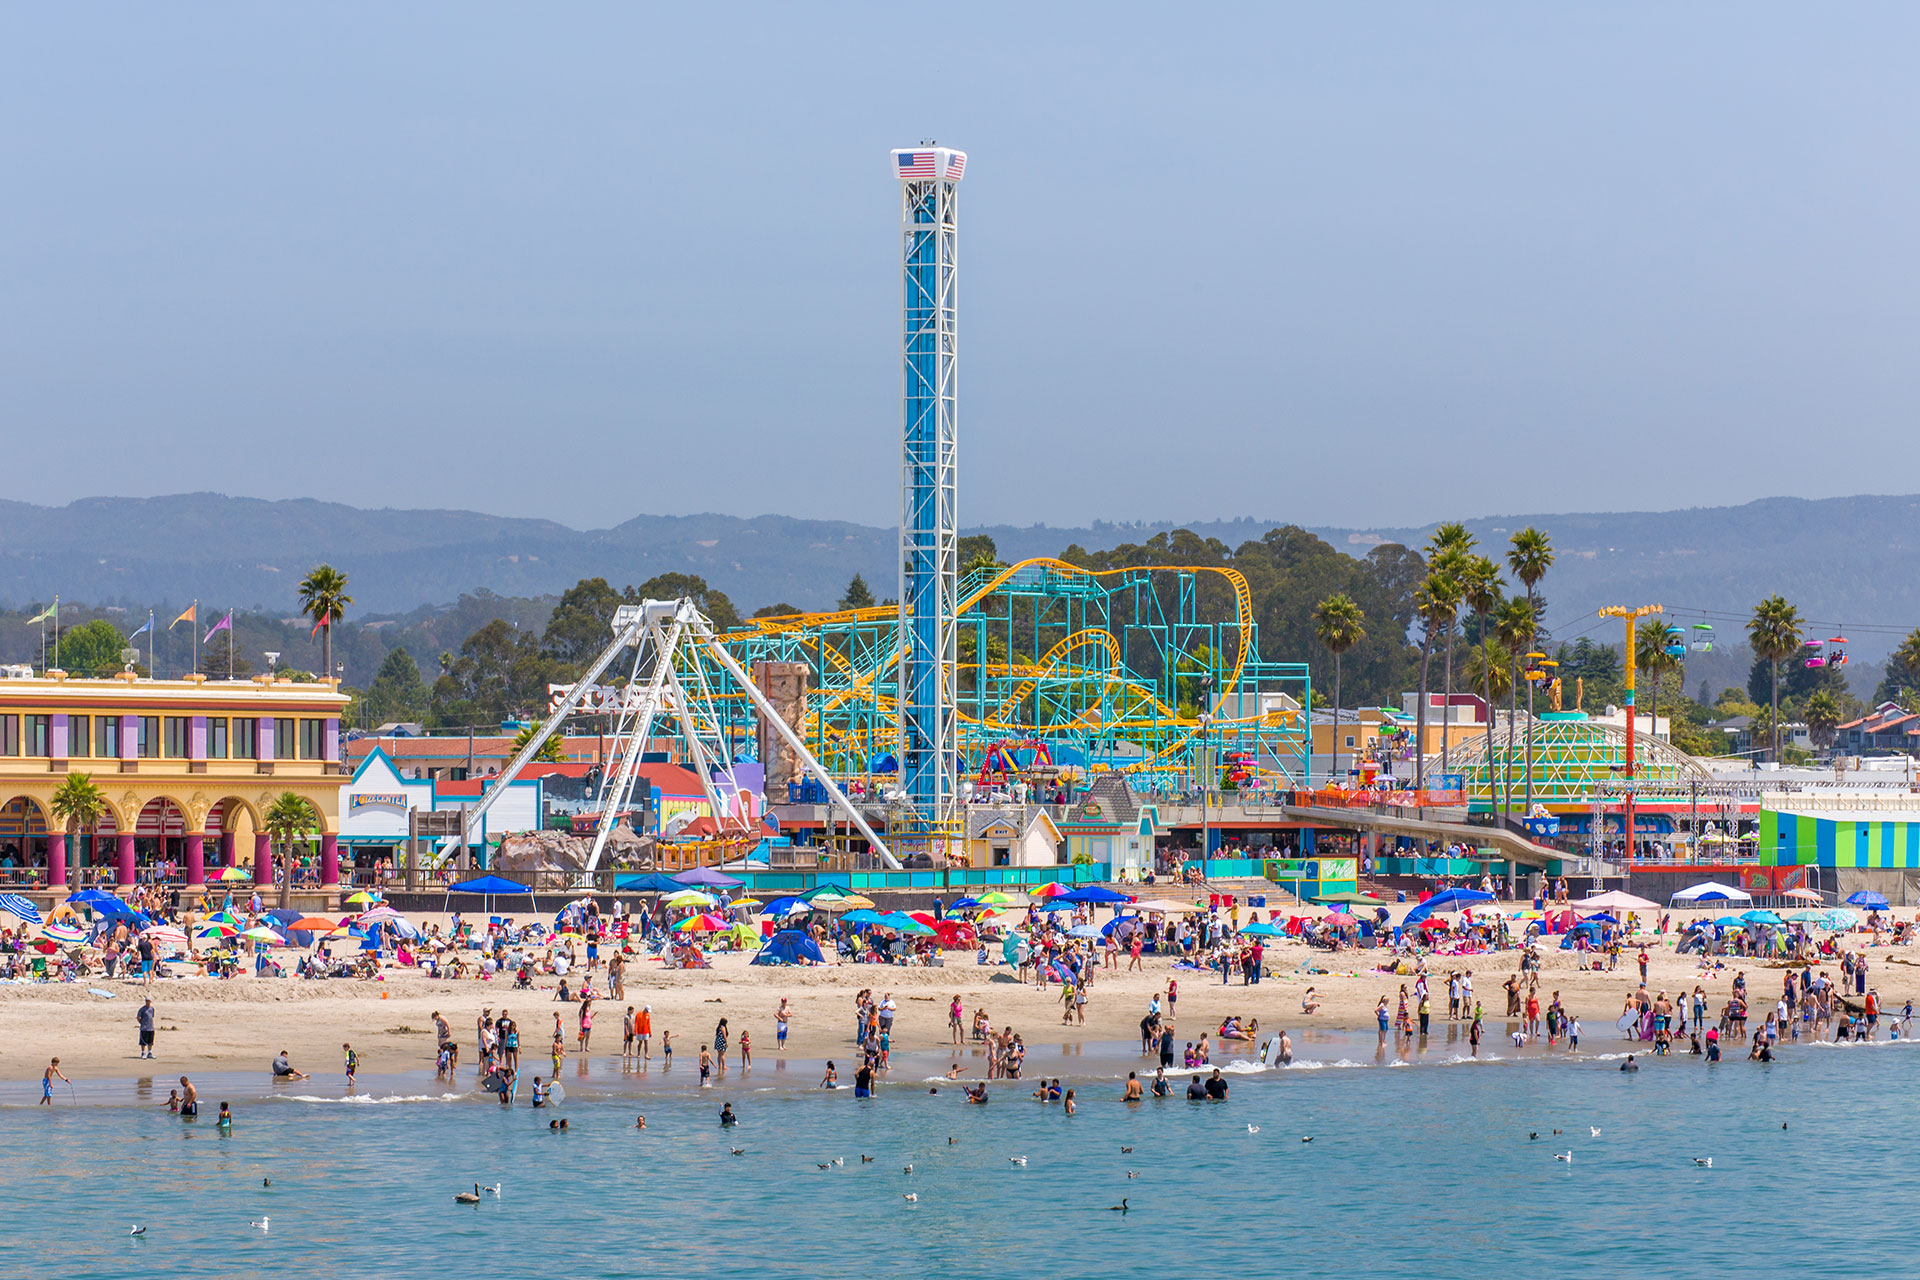 Santa Cruz Boardwalk; Courtesy of Ken Wolter/Shutterstock.com